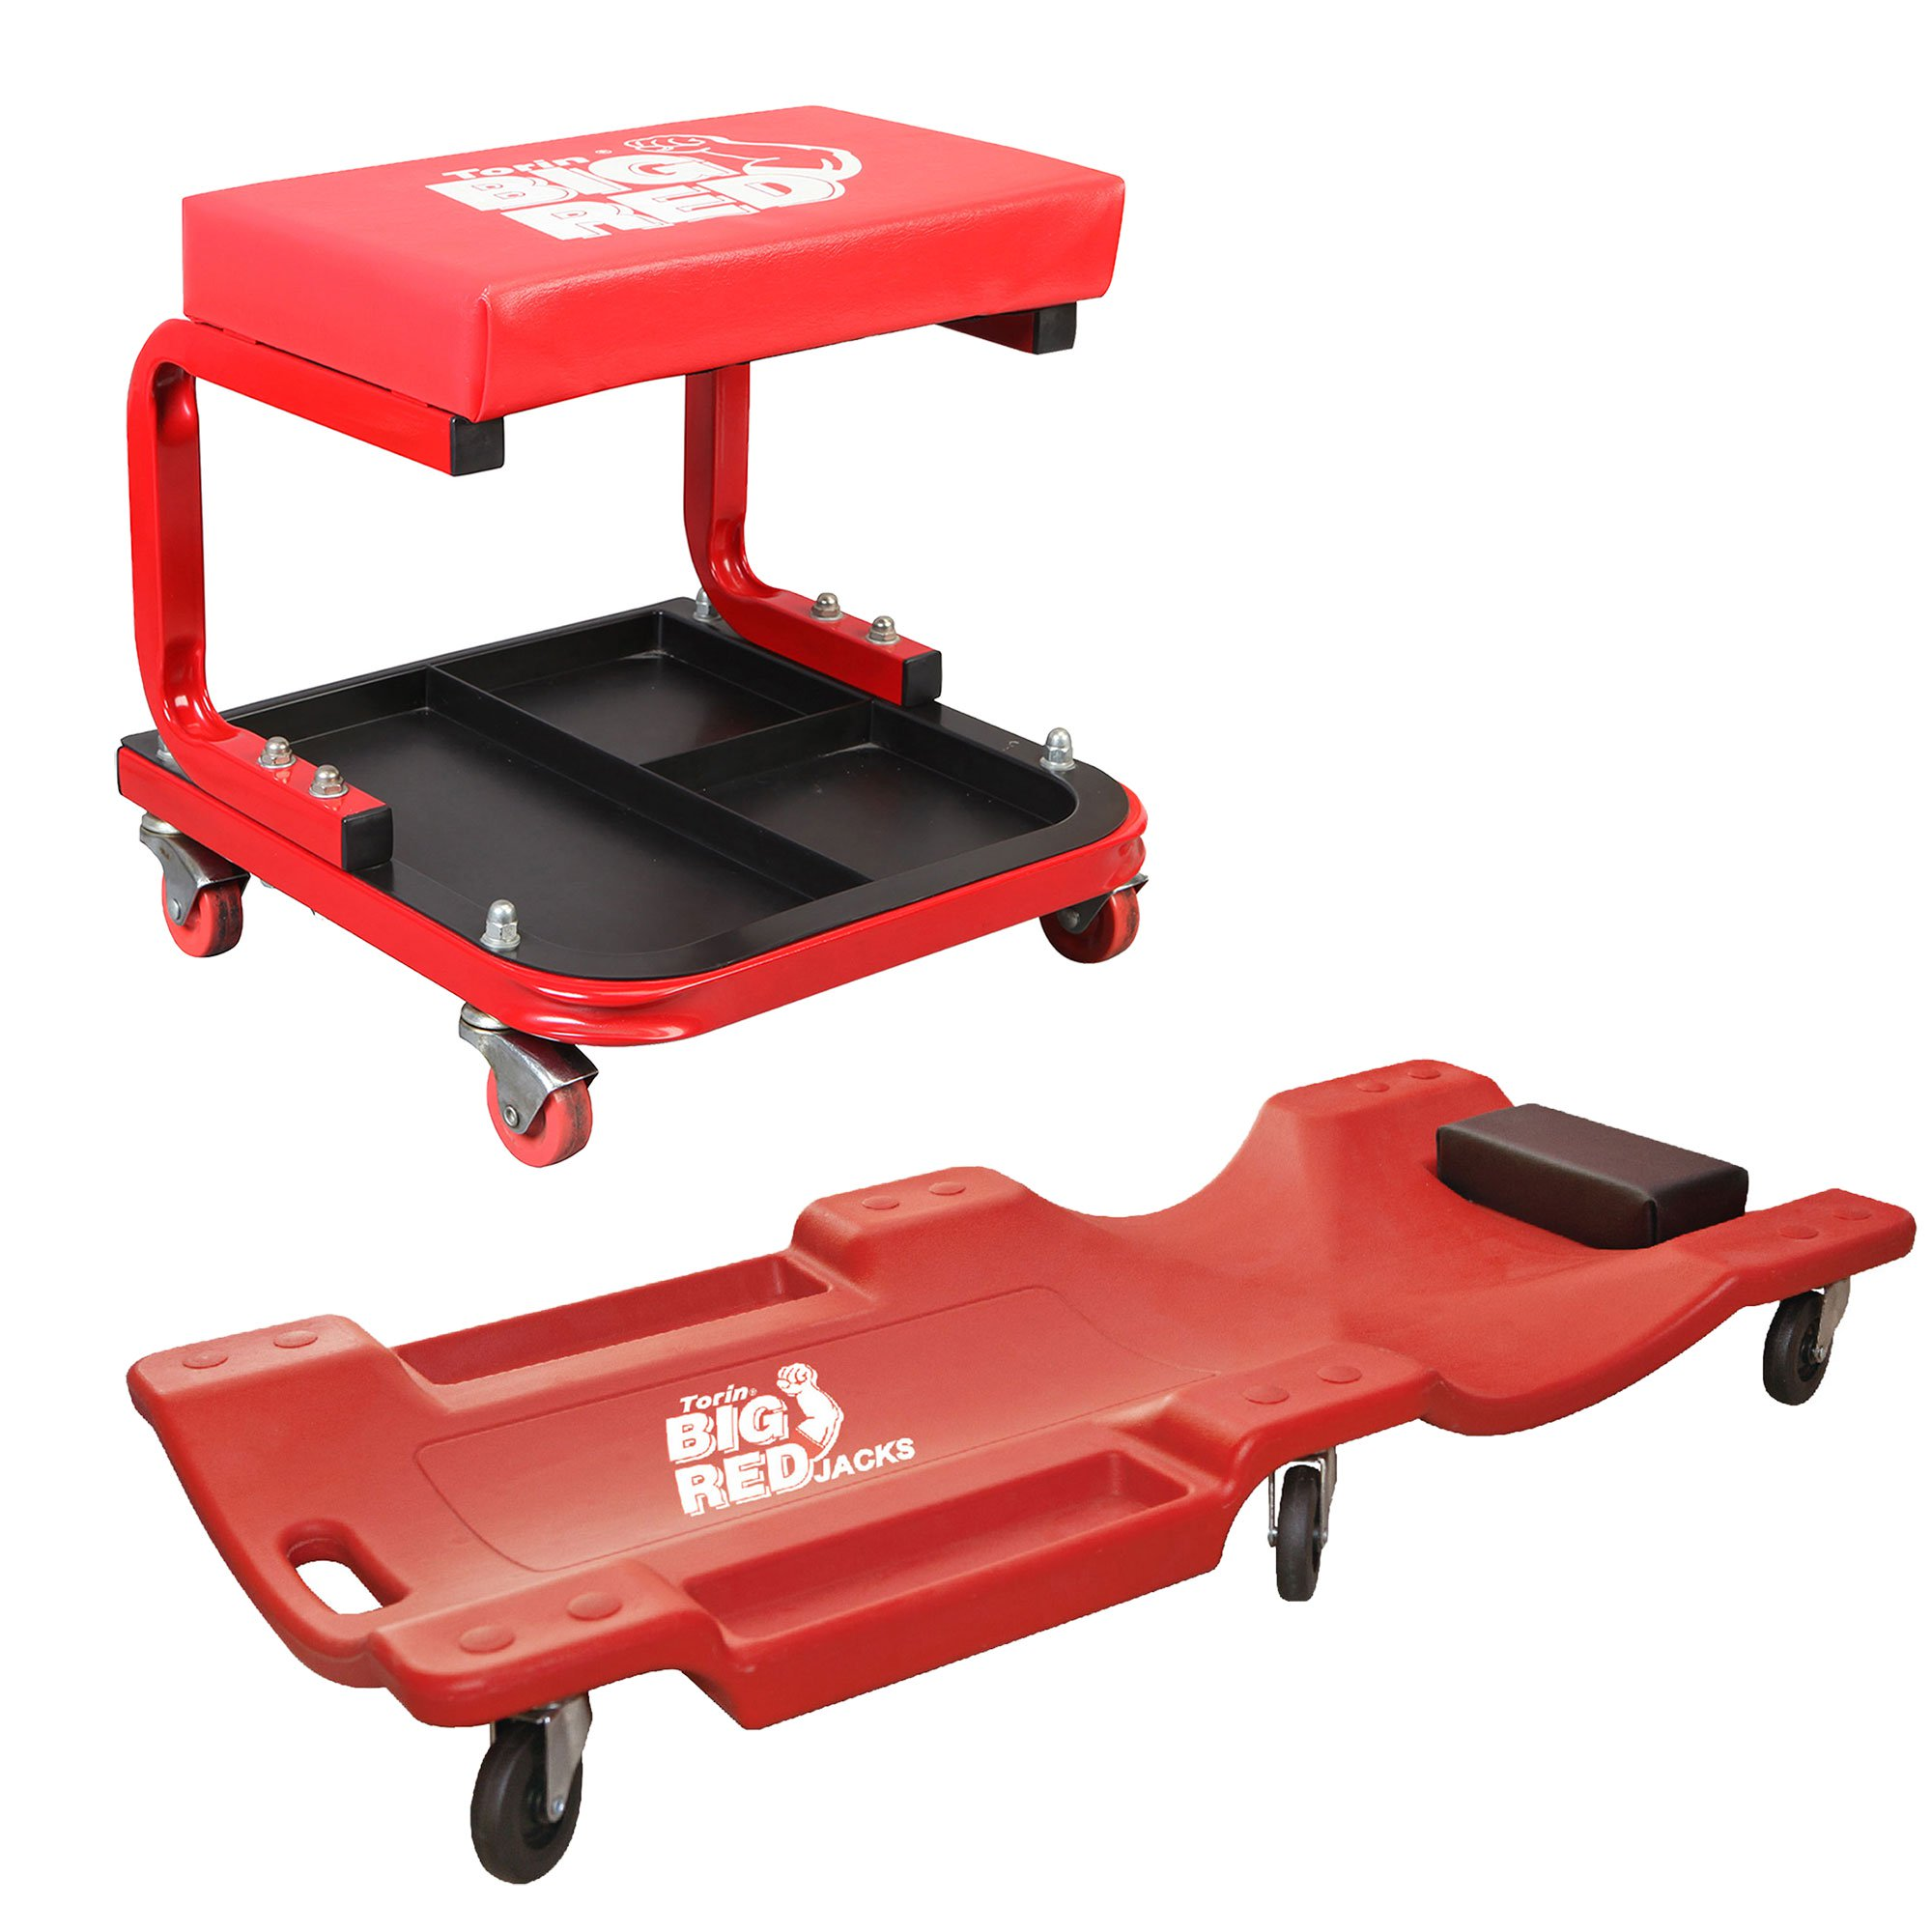 Torin Rolling Creeper Mechanic Padded Seat Stool with Tool Tray & Mechanic Cart